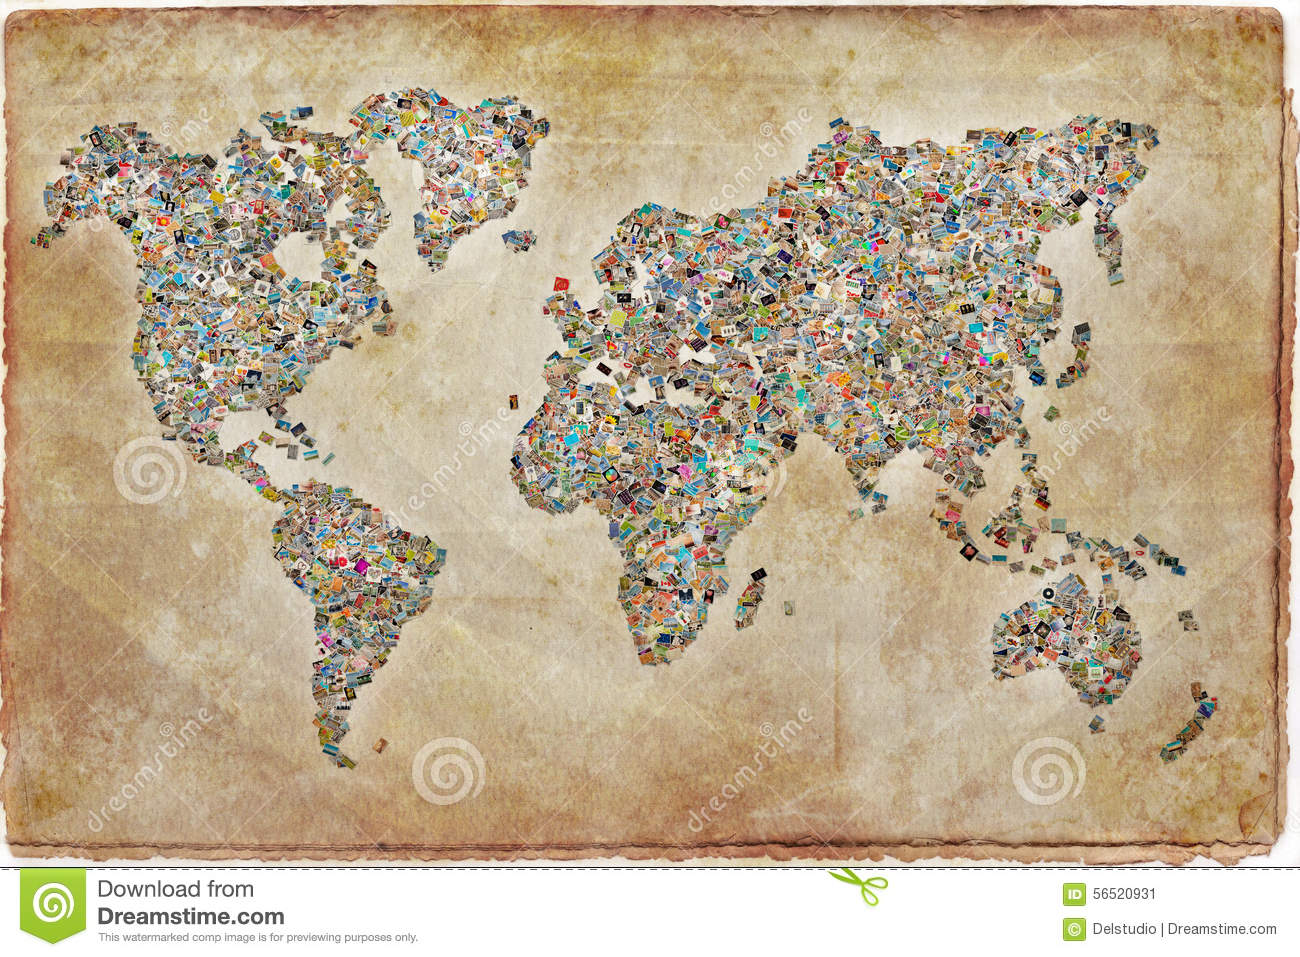 Photos collage in the shape of a world map stock image image of photos collage in the shape of a world map gumiabroncs